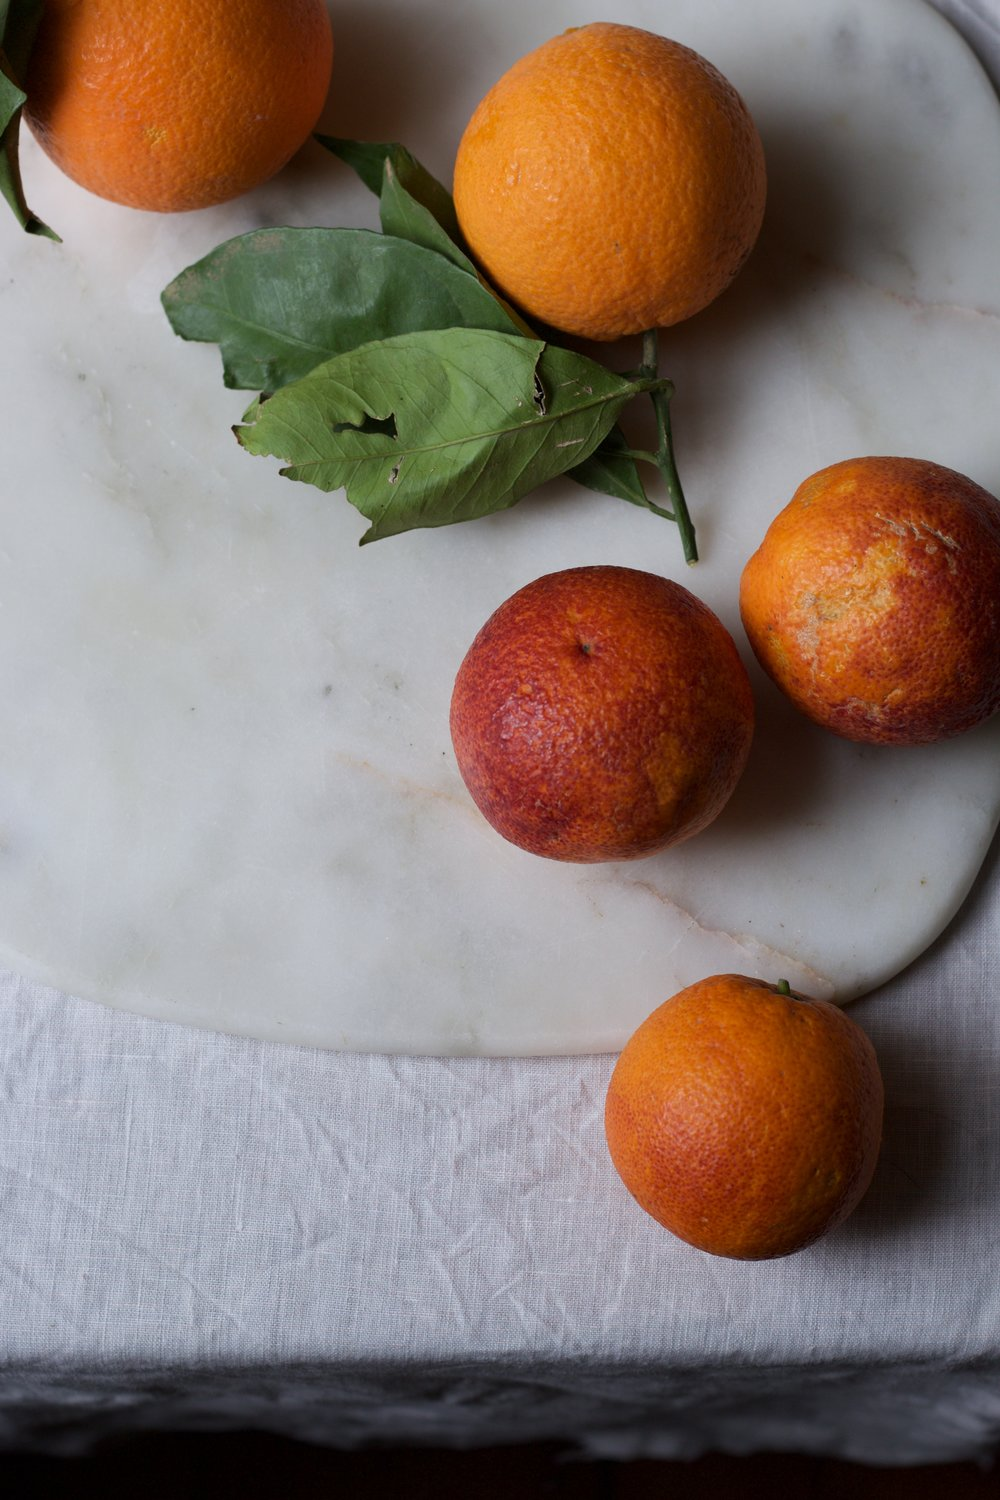 Blood oranges on Jette Virdis blog